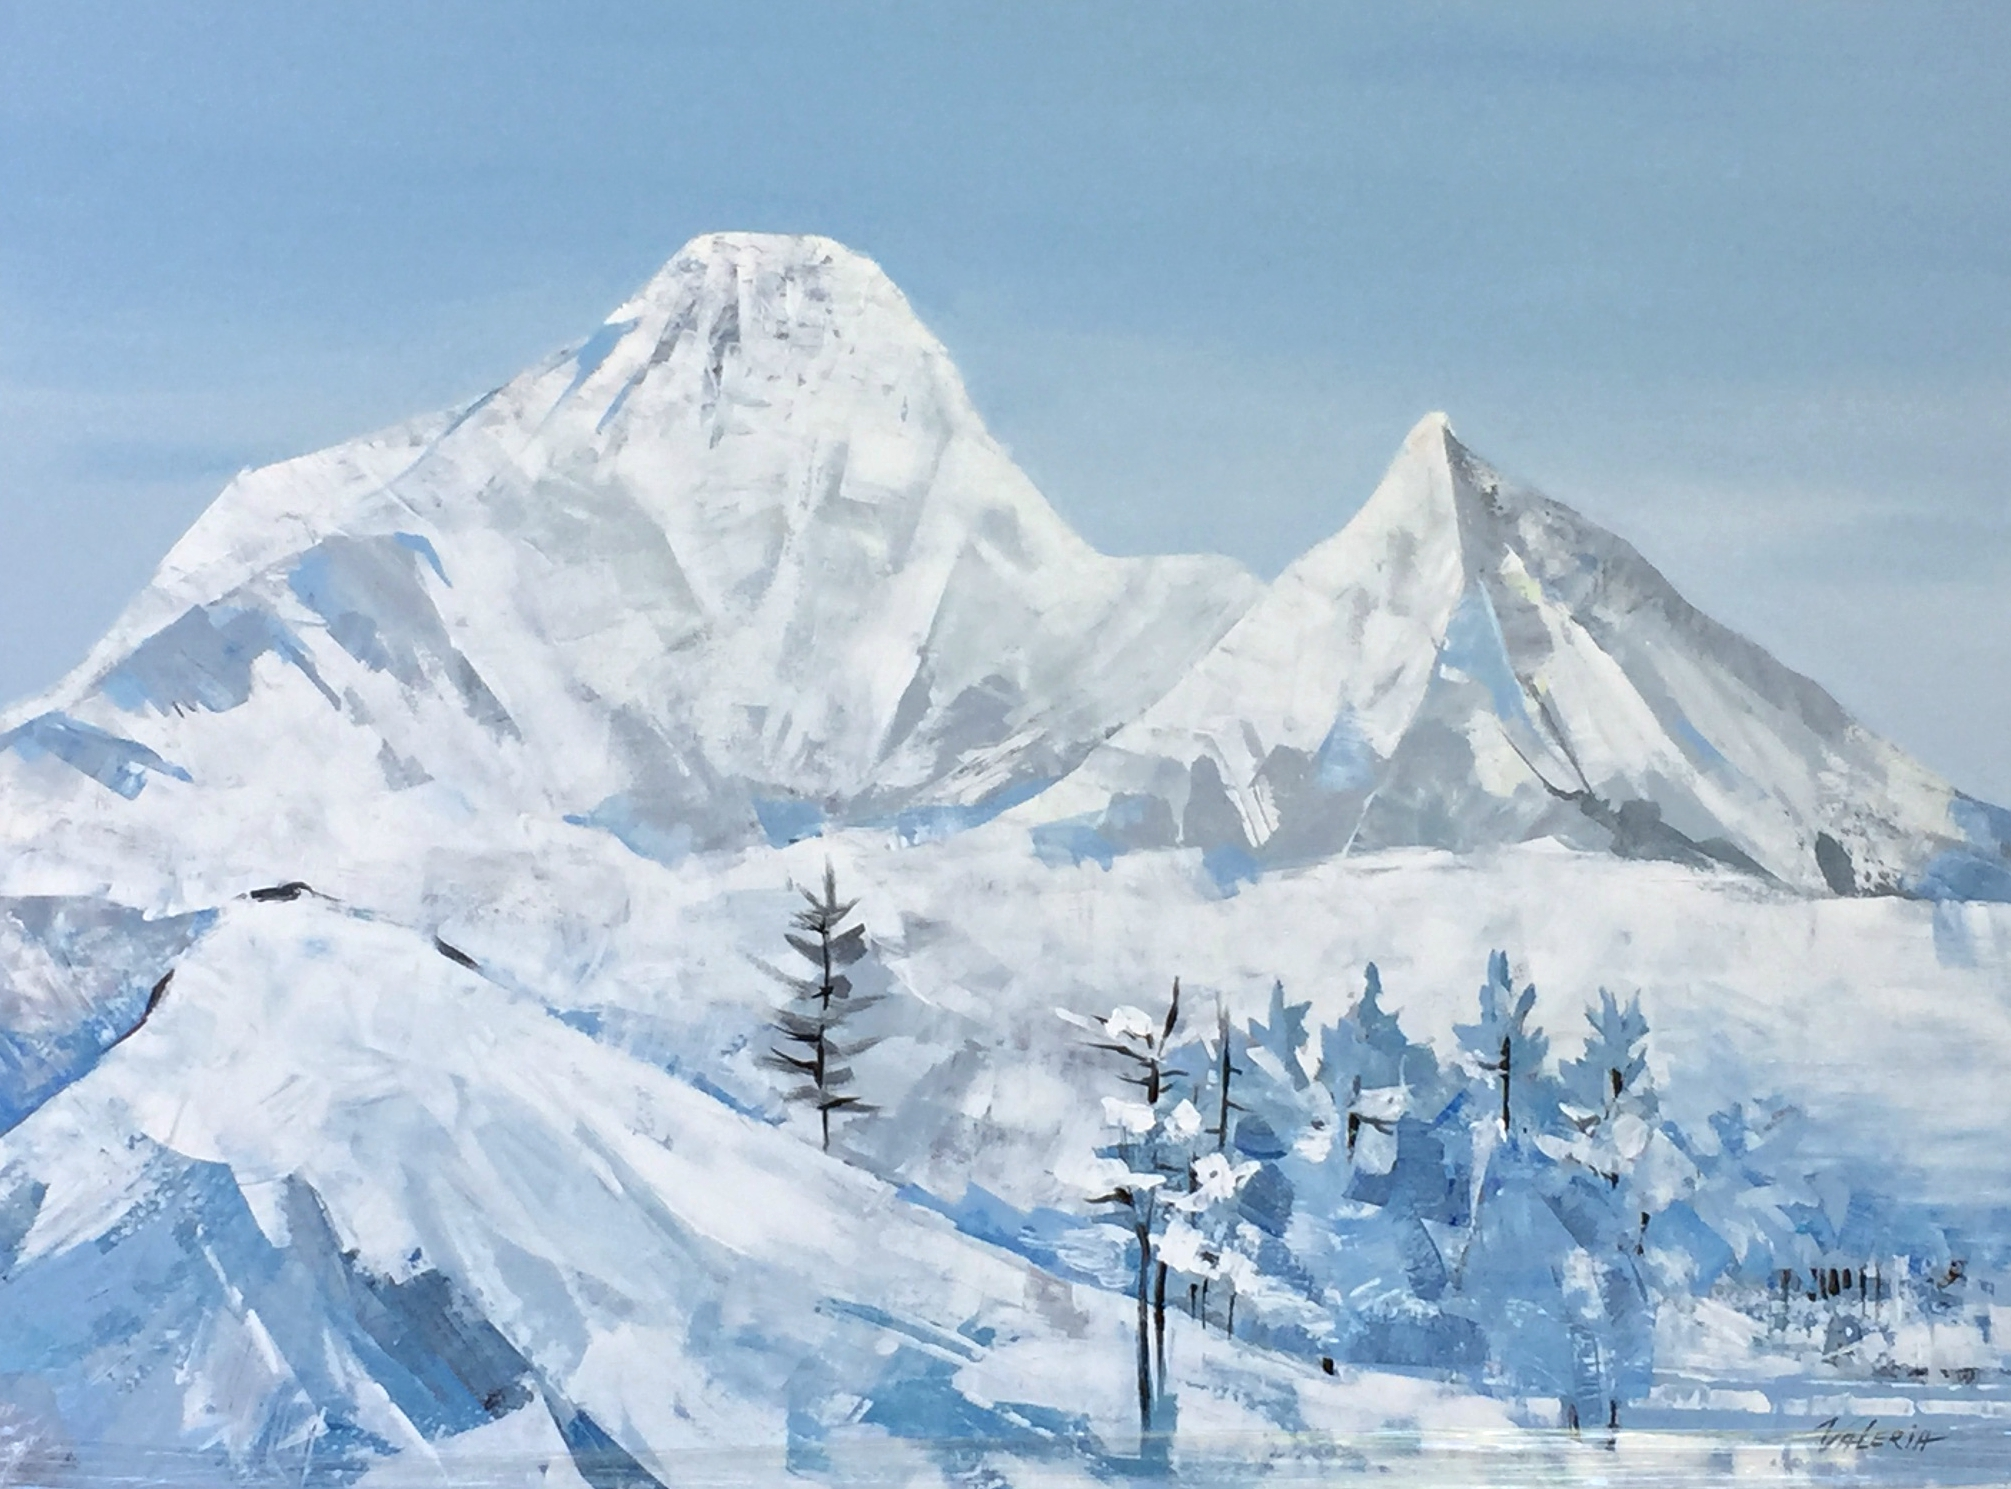 Rockies on My Mind, acrylic landscape painting by Valeria Mravyan | Effusion Art Gallery + Glass Studio, Invermere BC